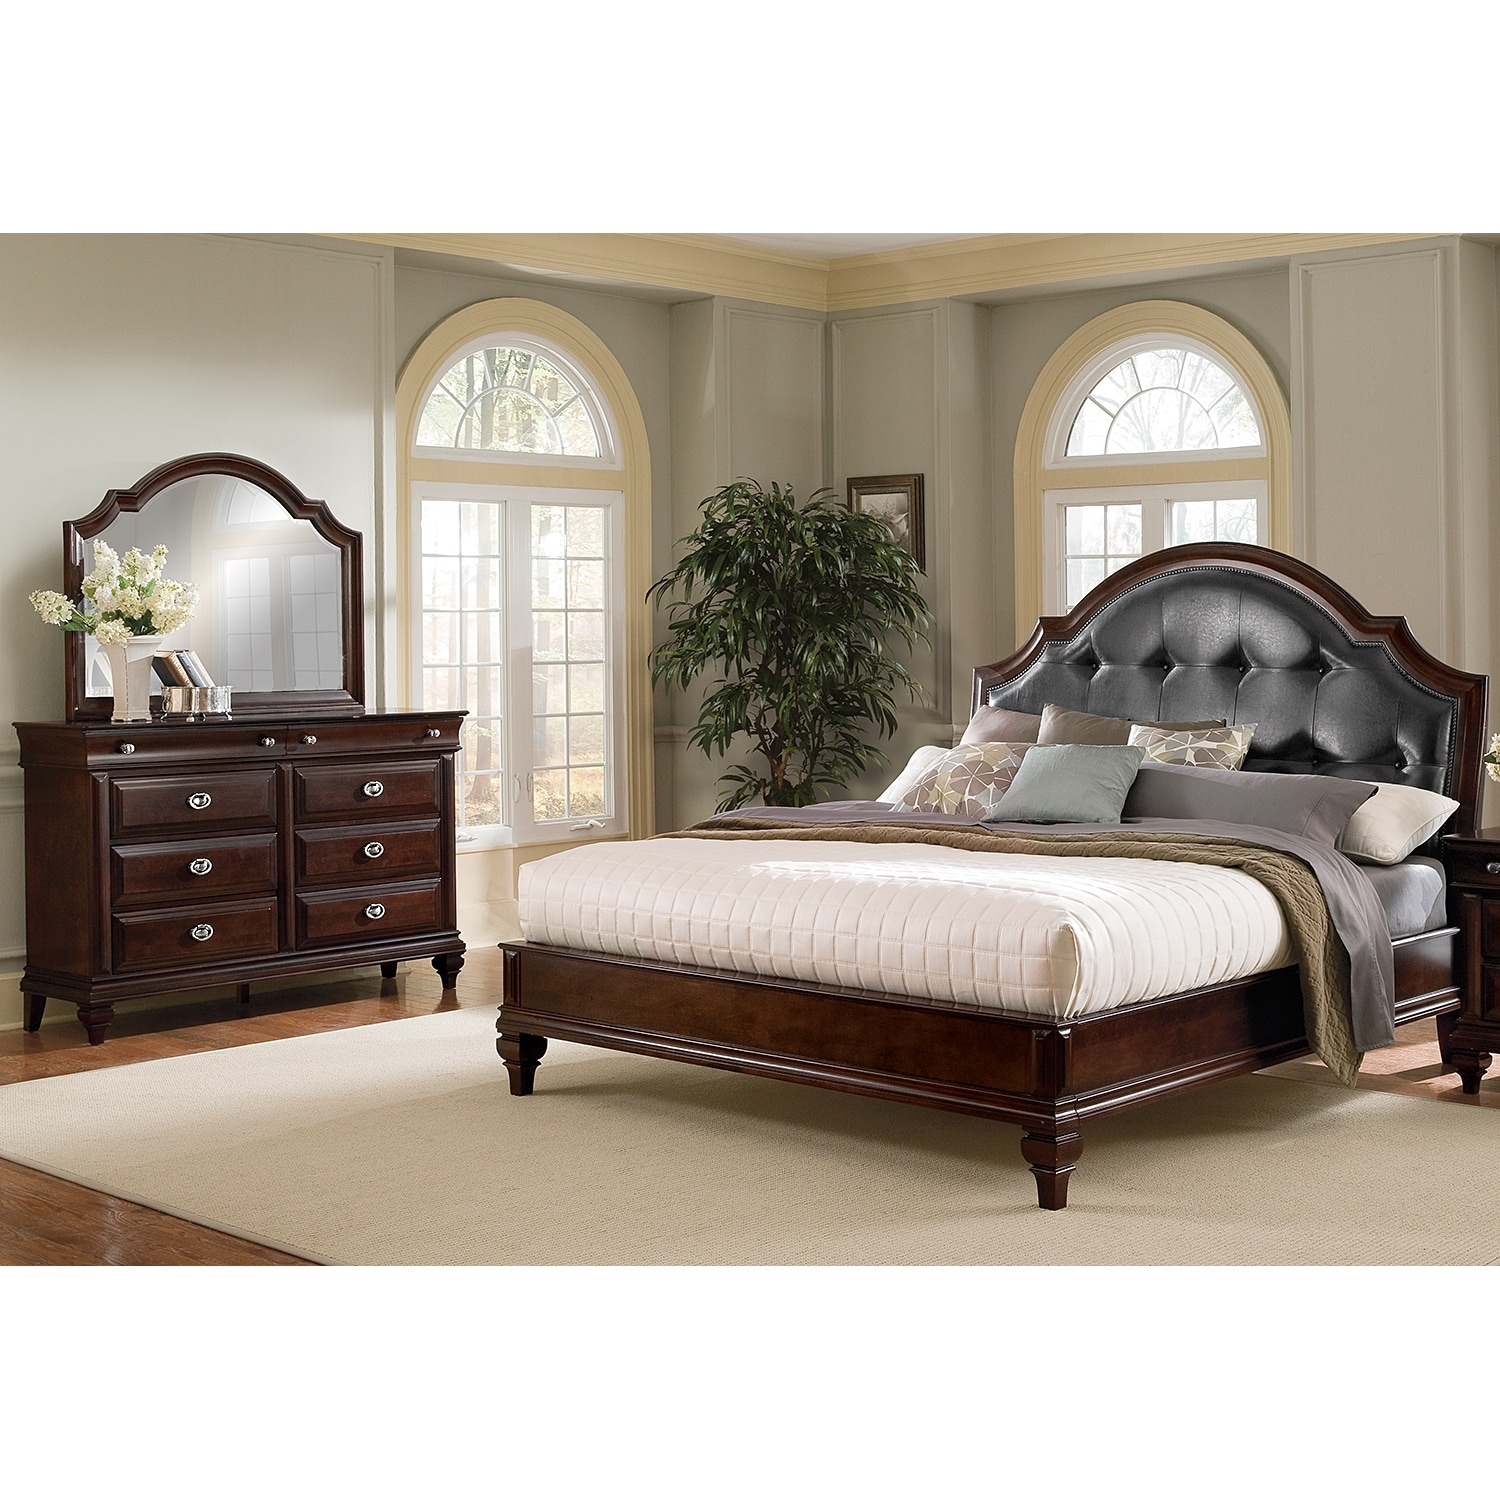 Manhattan Piece King Bedroom Set Cherry Value City Furniture - Manhattan bedroom furniture